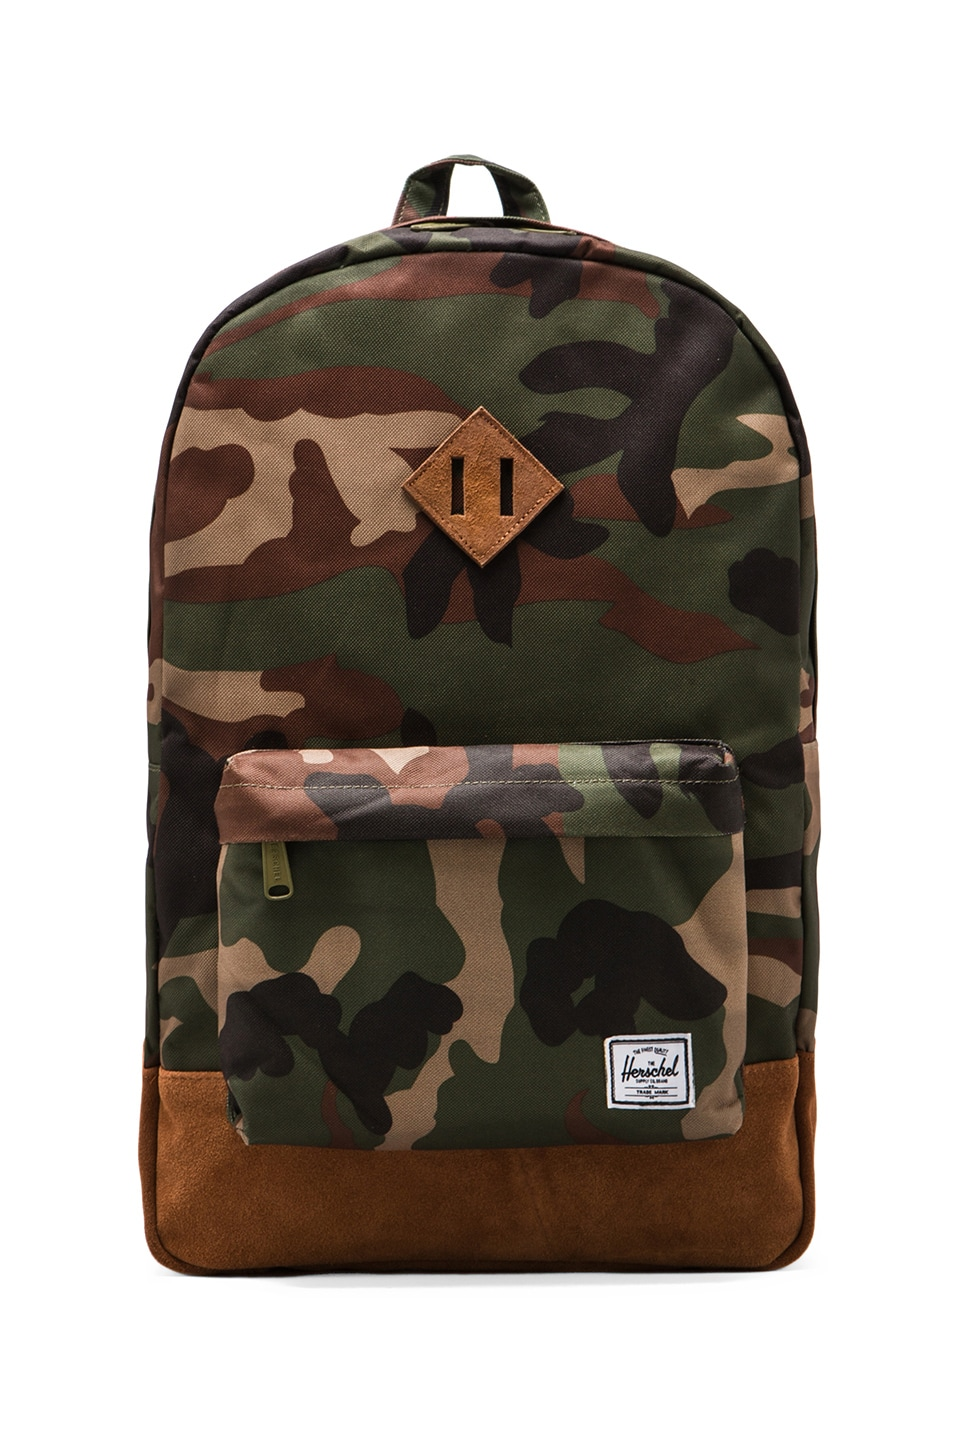 Herschel Supply Co. Heritage Suede Series Backpack in Camo